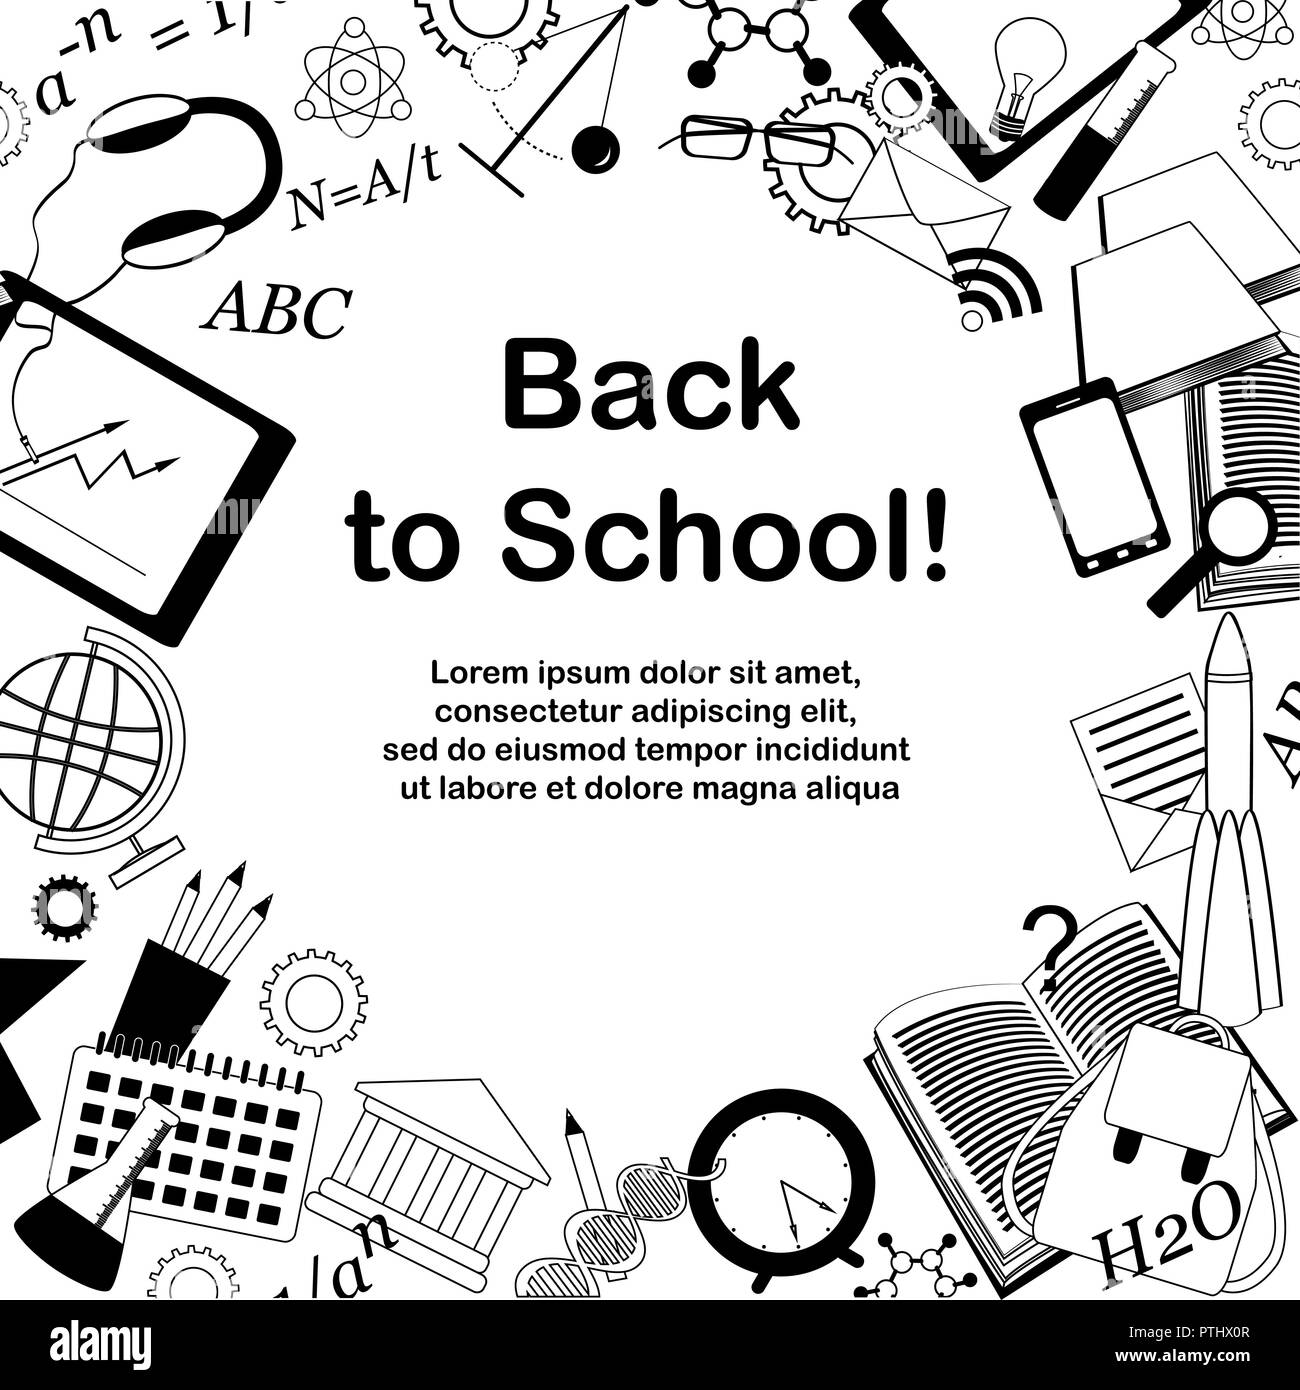 Back to school frame, hand-drawn doodles background. Vector illustration. Place for text - Stock Image